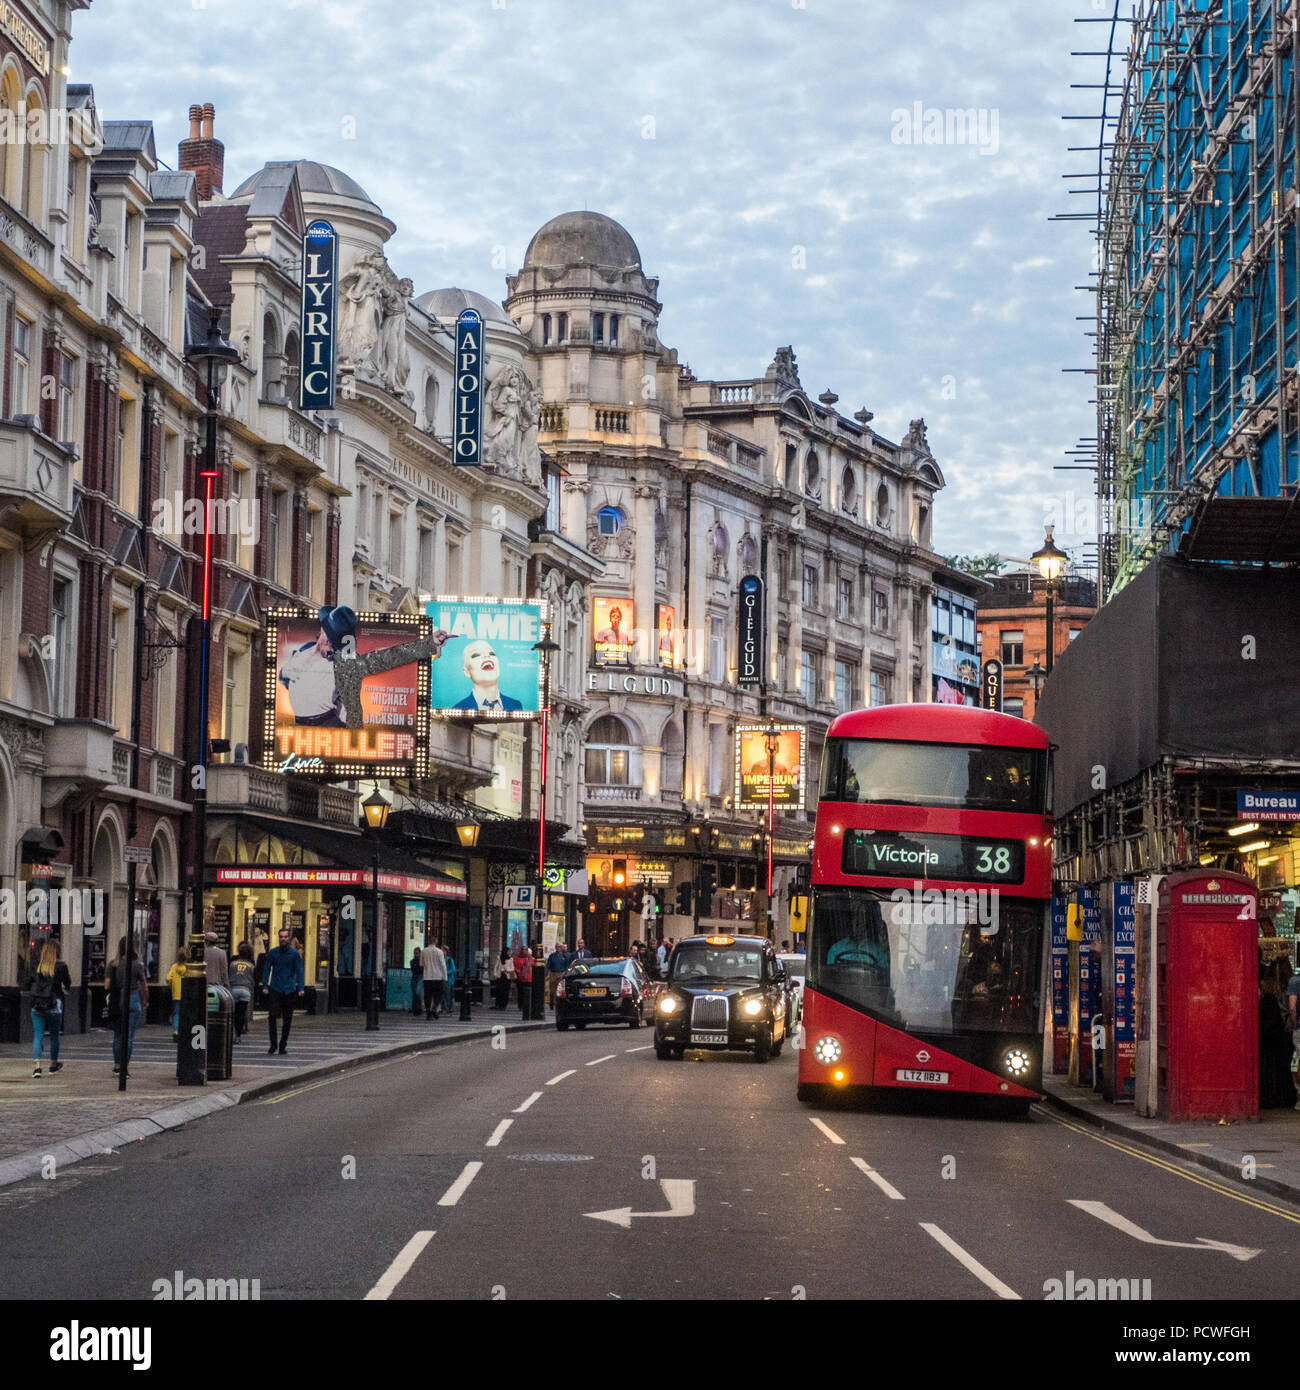 Shaftesbury Avenue in London, Famous for its theatres, England - Stock Image